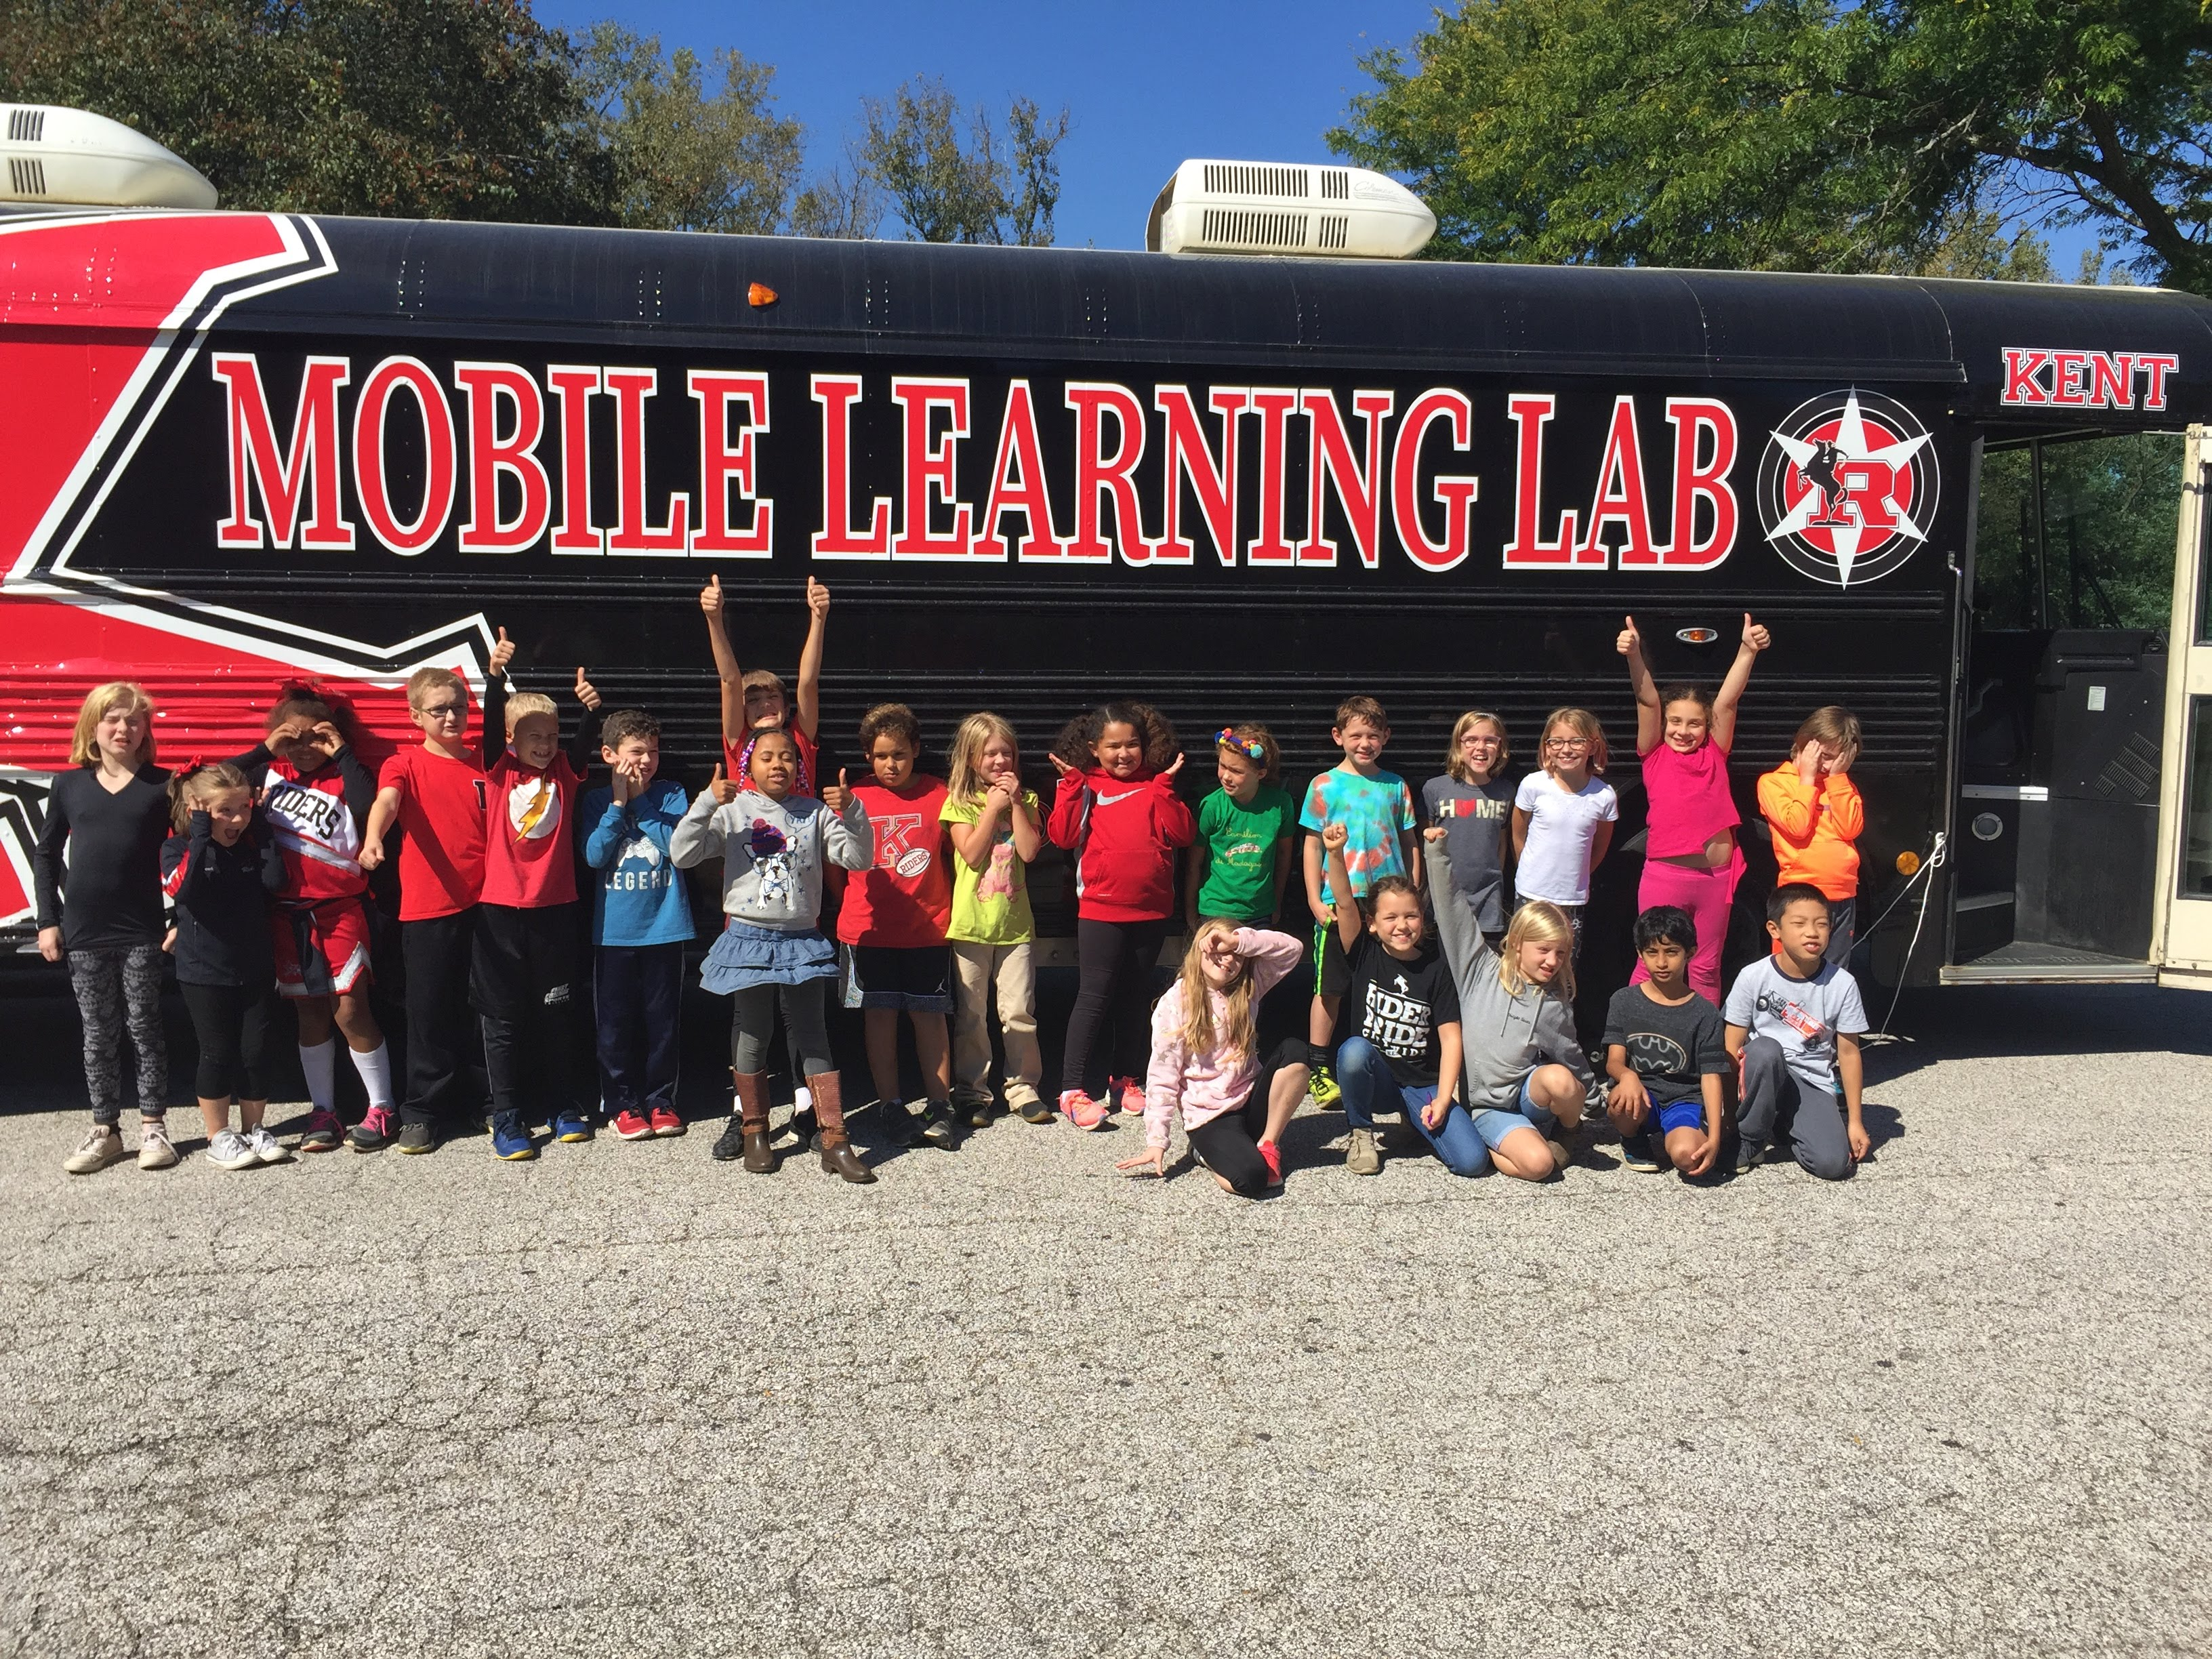 Kent Mobile Learning Lab with students in front